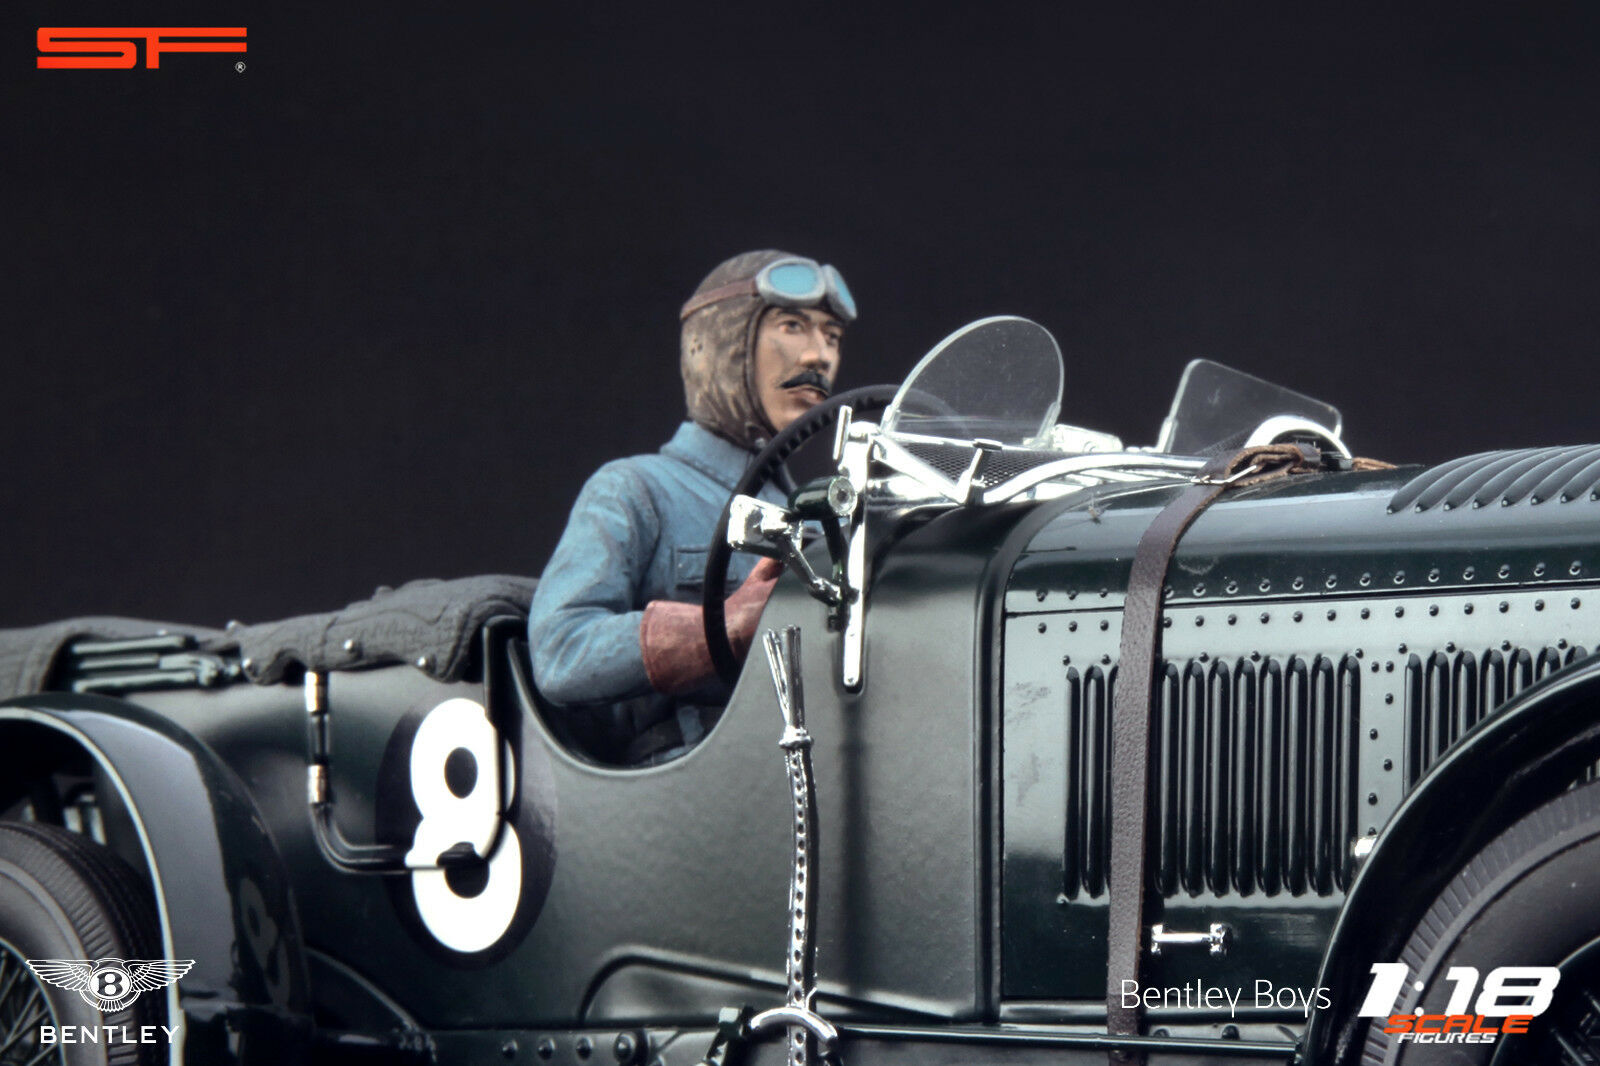 1 18 Tim Birkin racing driver driver driver figurine    NO CAR    for 1 18 Bentley Minichamps 30b003